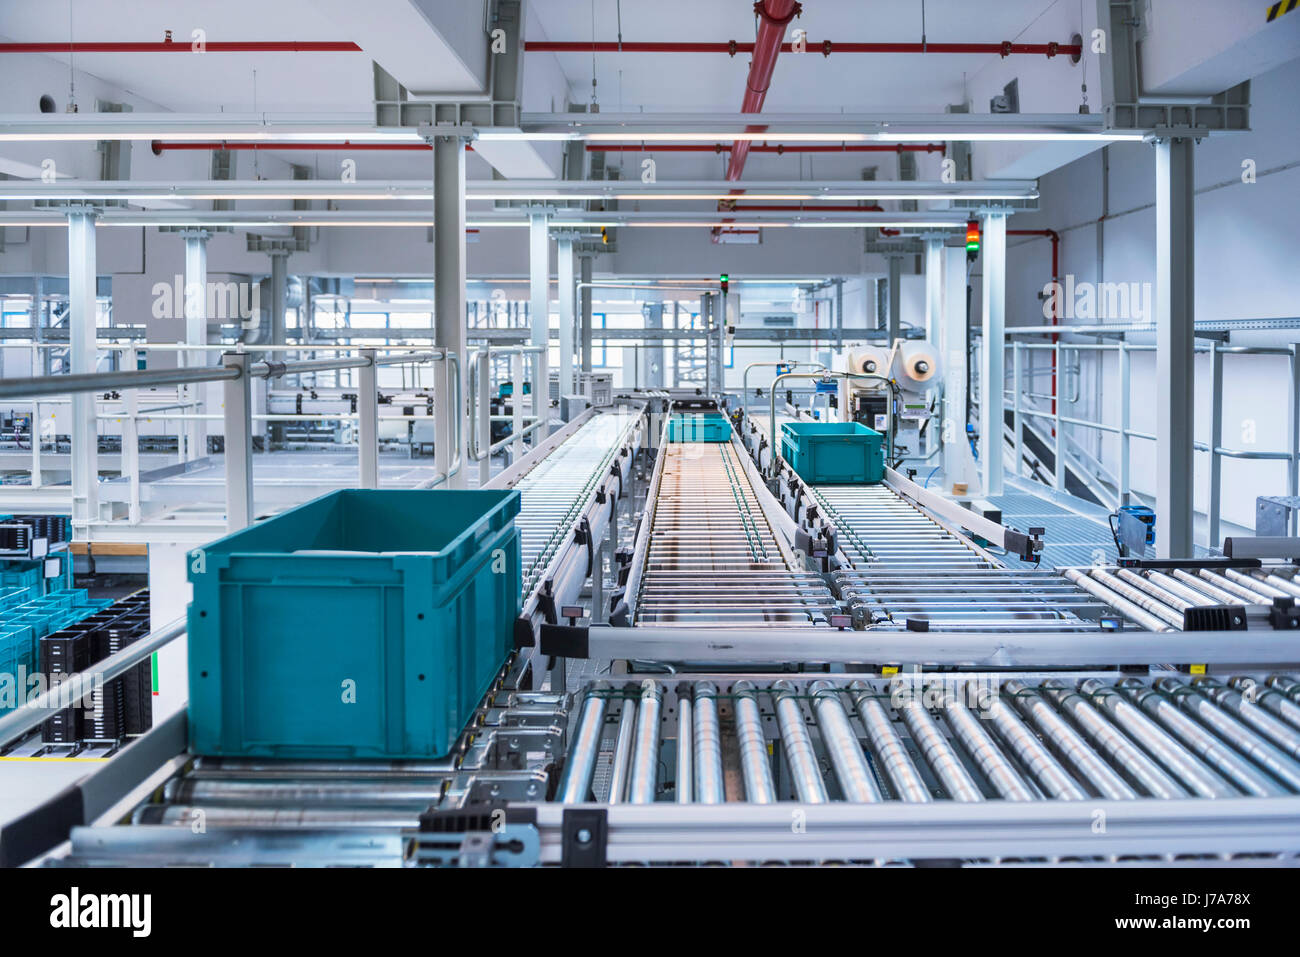 Boxes on conveyor belt in modern automatized high rack warehouse - Stock Image